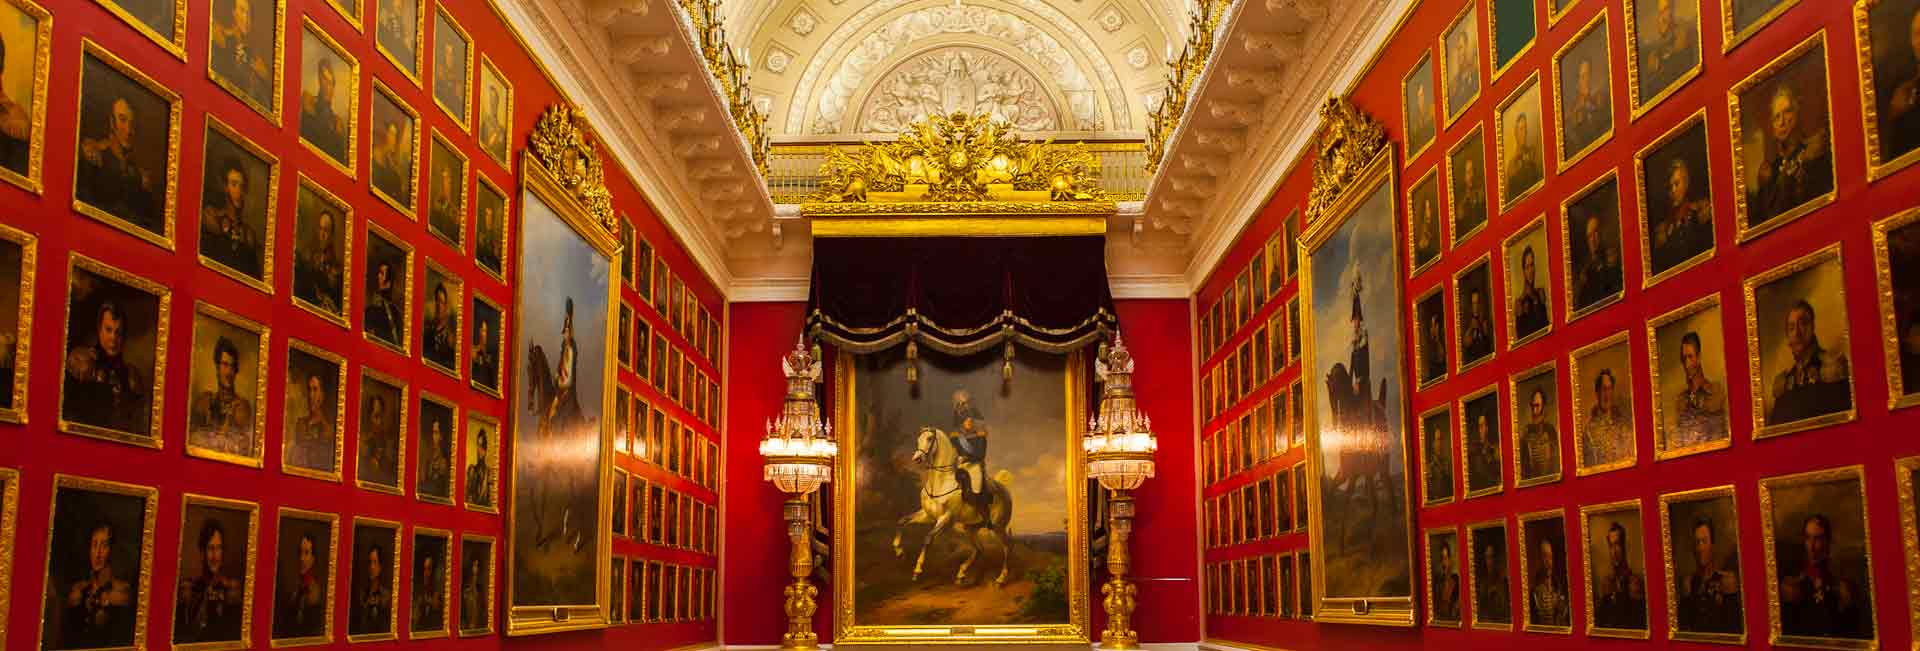 Gallery of military portraits in the Hermitage (St. Petersburg, Russia). Photo credit: Jonathan Irish